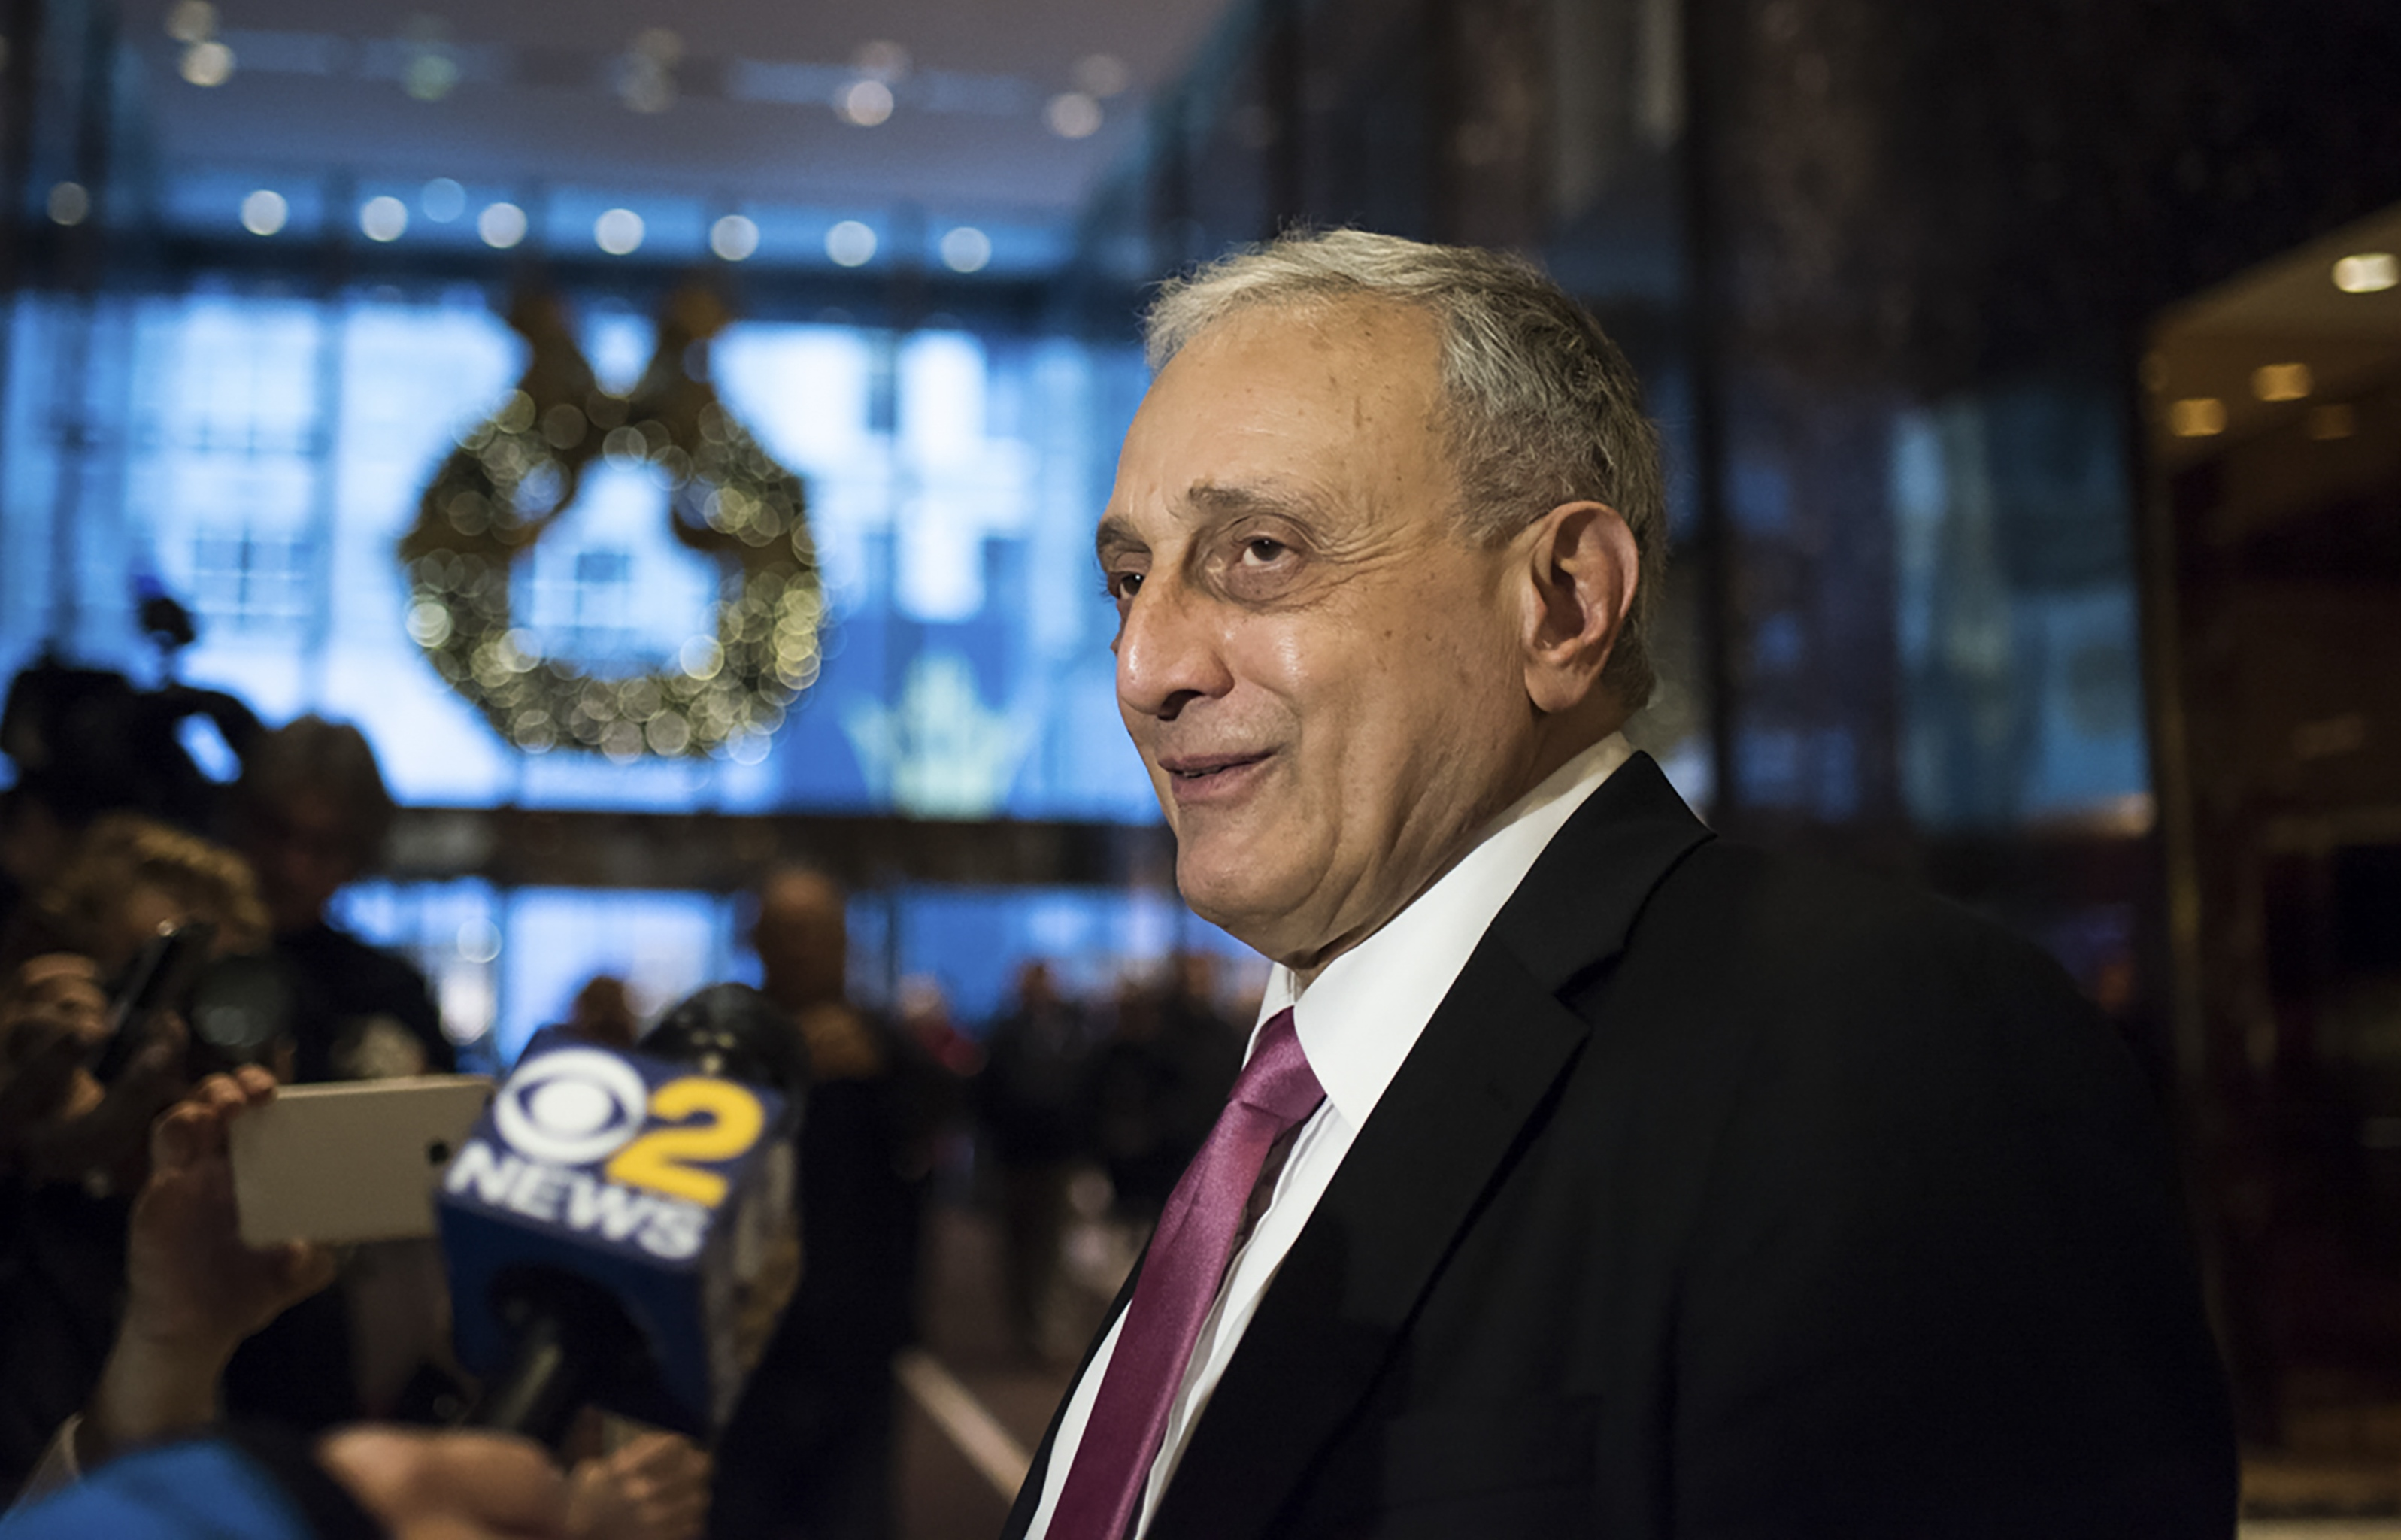 Carl Paladino speaks with reporters at Trump Tower on Fifth Avenue in New York on Dec. 5, 2016. (Hilary Swift/New York Times)